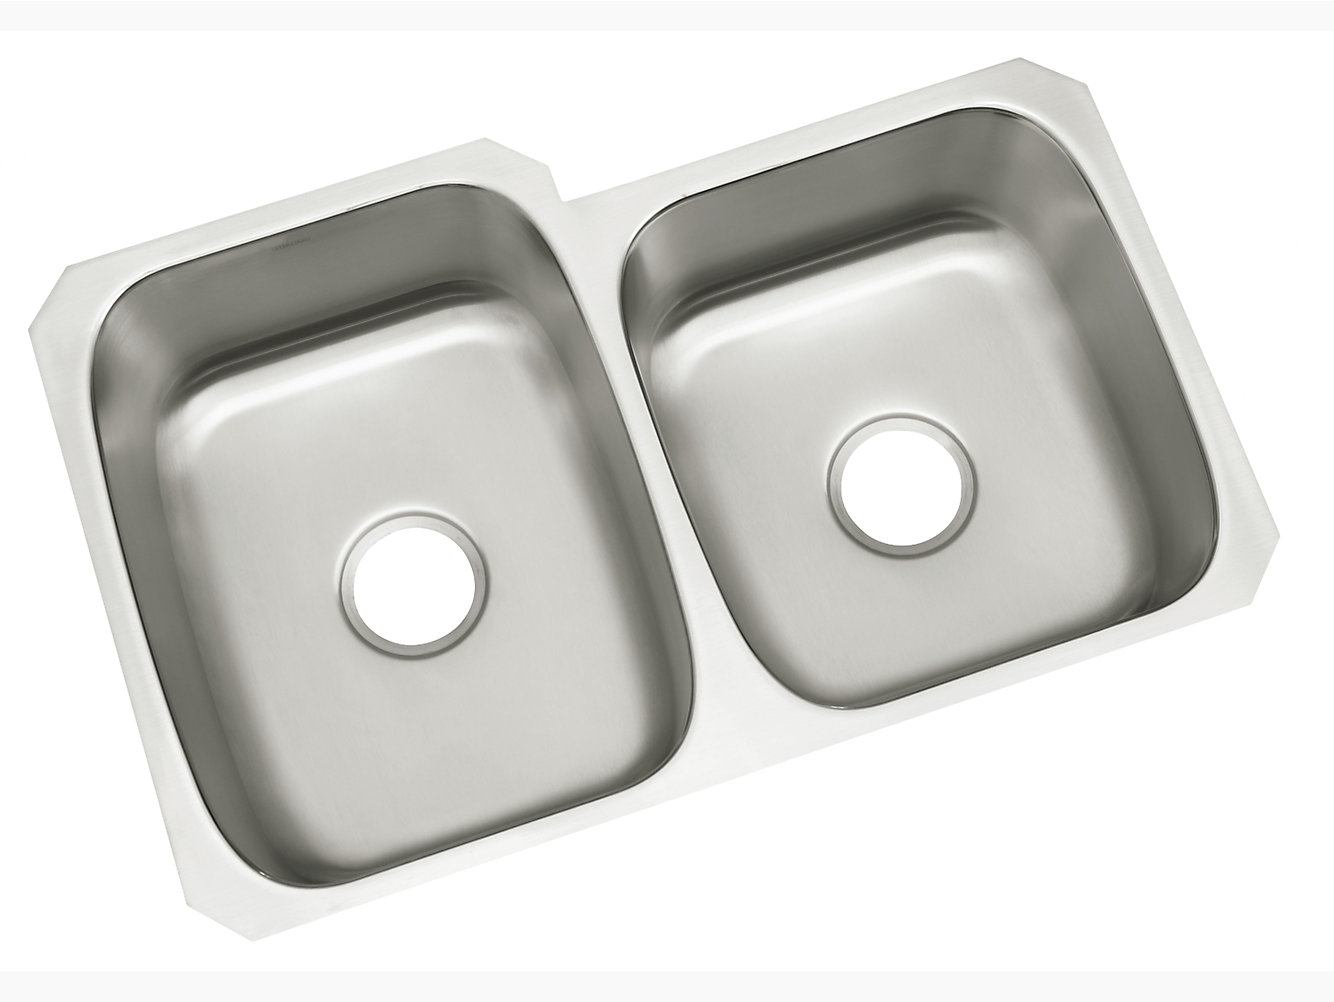 Mcallister undercounter double basin kitchen sink 31 34 x 20 34 mcallister undercounter double basin kitchen sink 31 34 x 20 34 18 f11409 na sterling workwithnaturefo